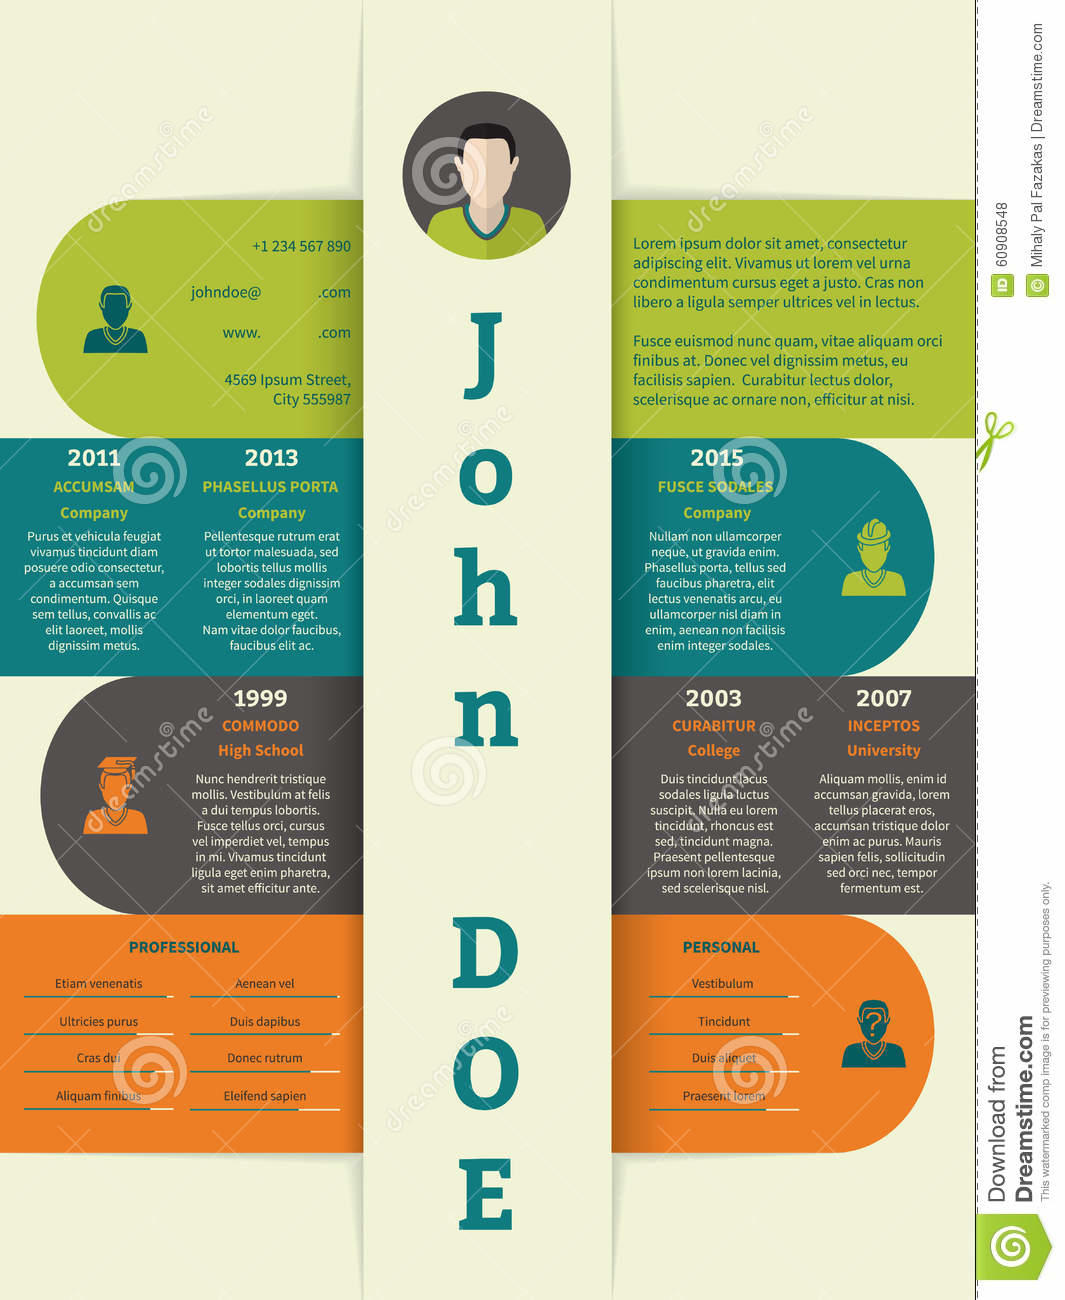 17 Awesome Modern Curriculum Vitae for Pictures